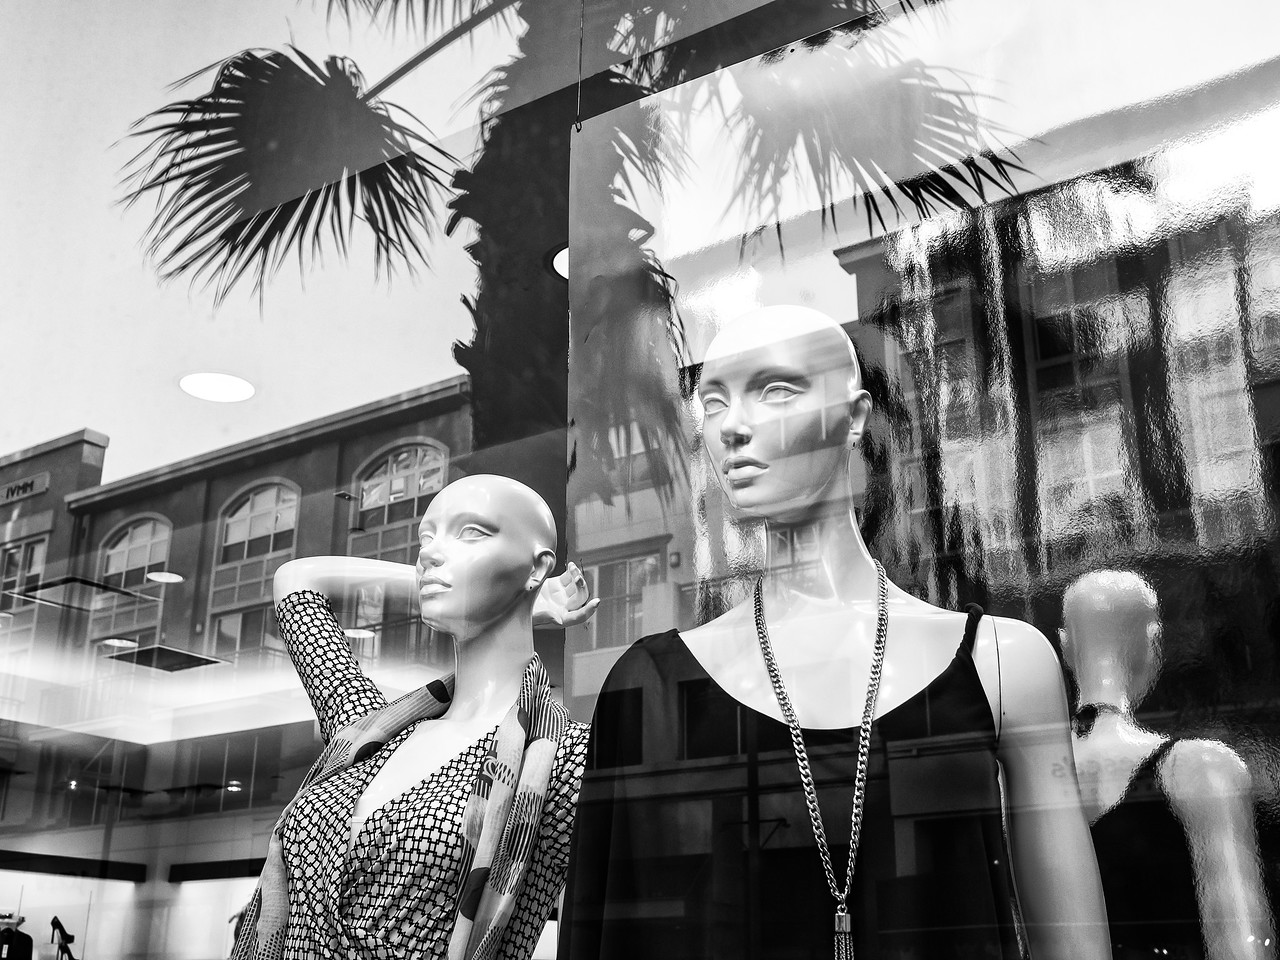 Manikins in the Window #7